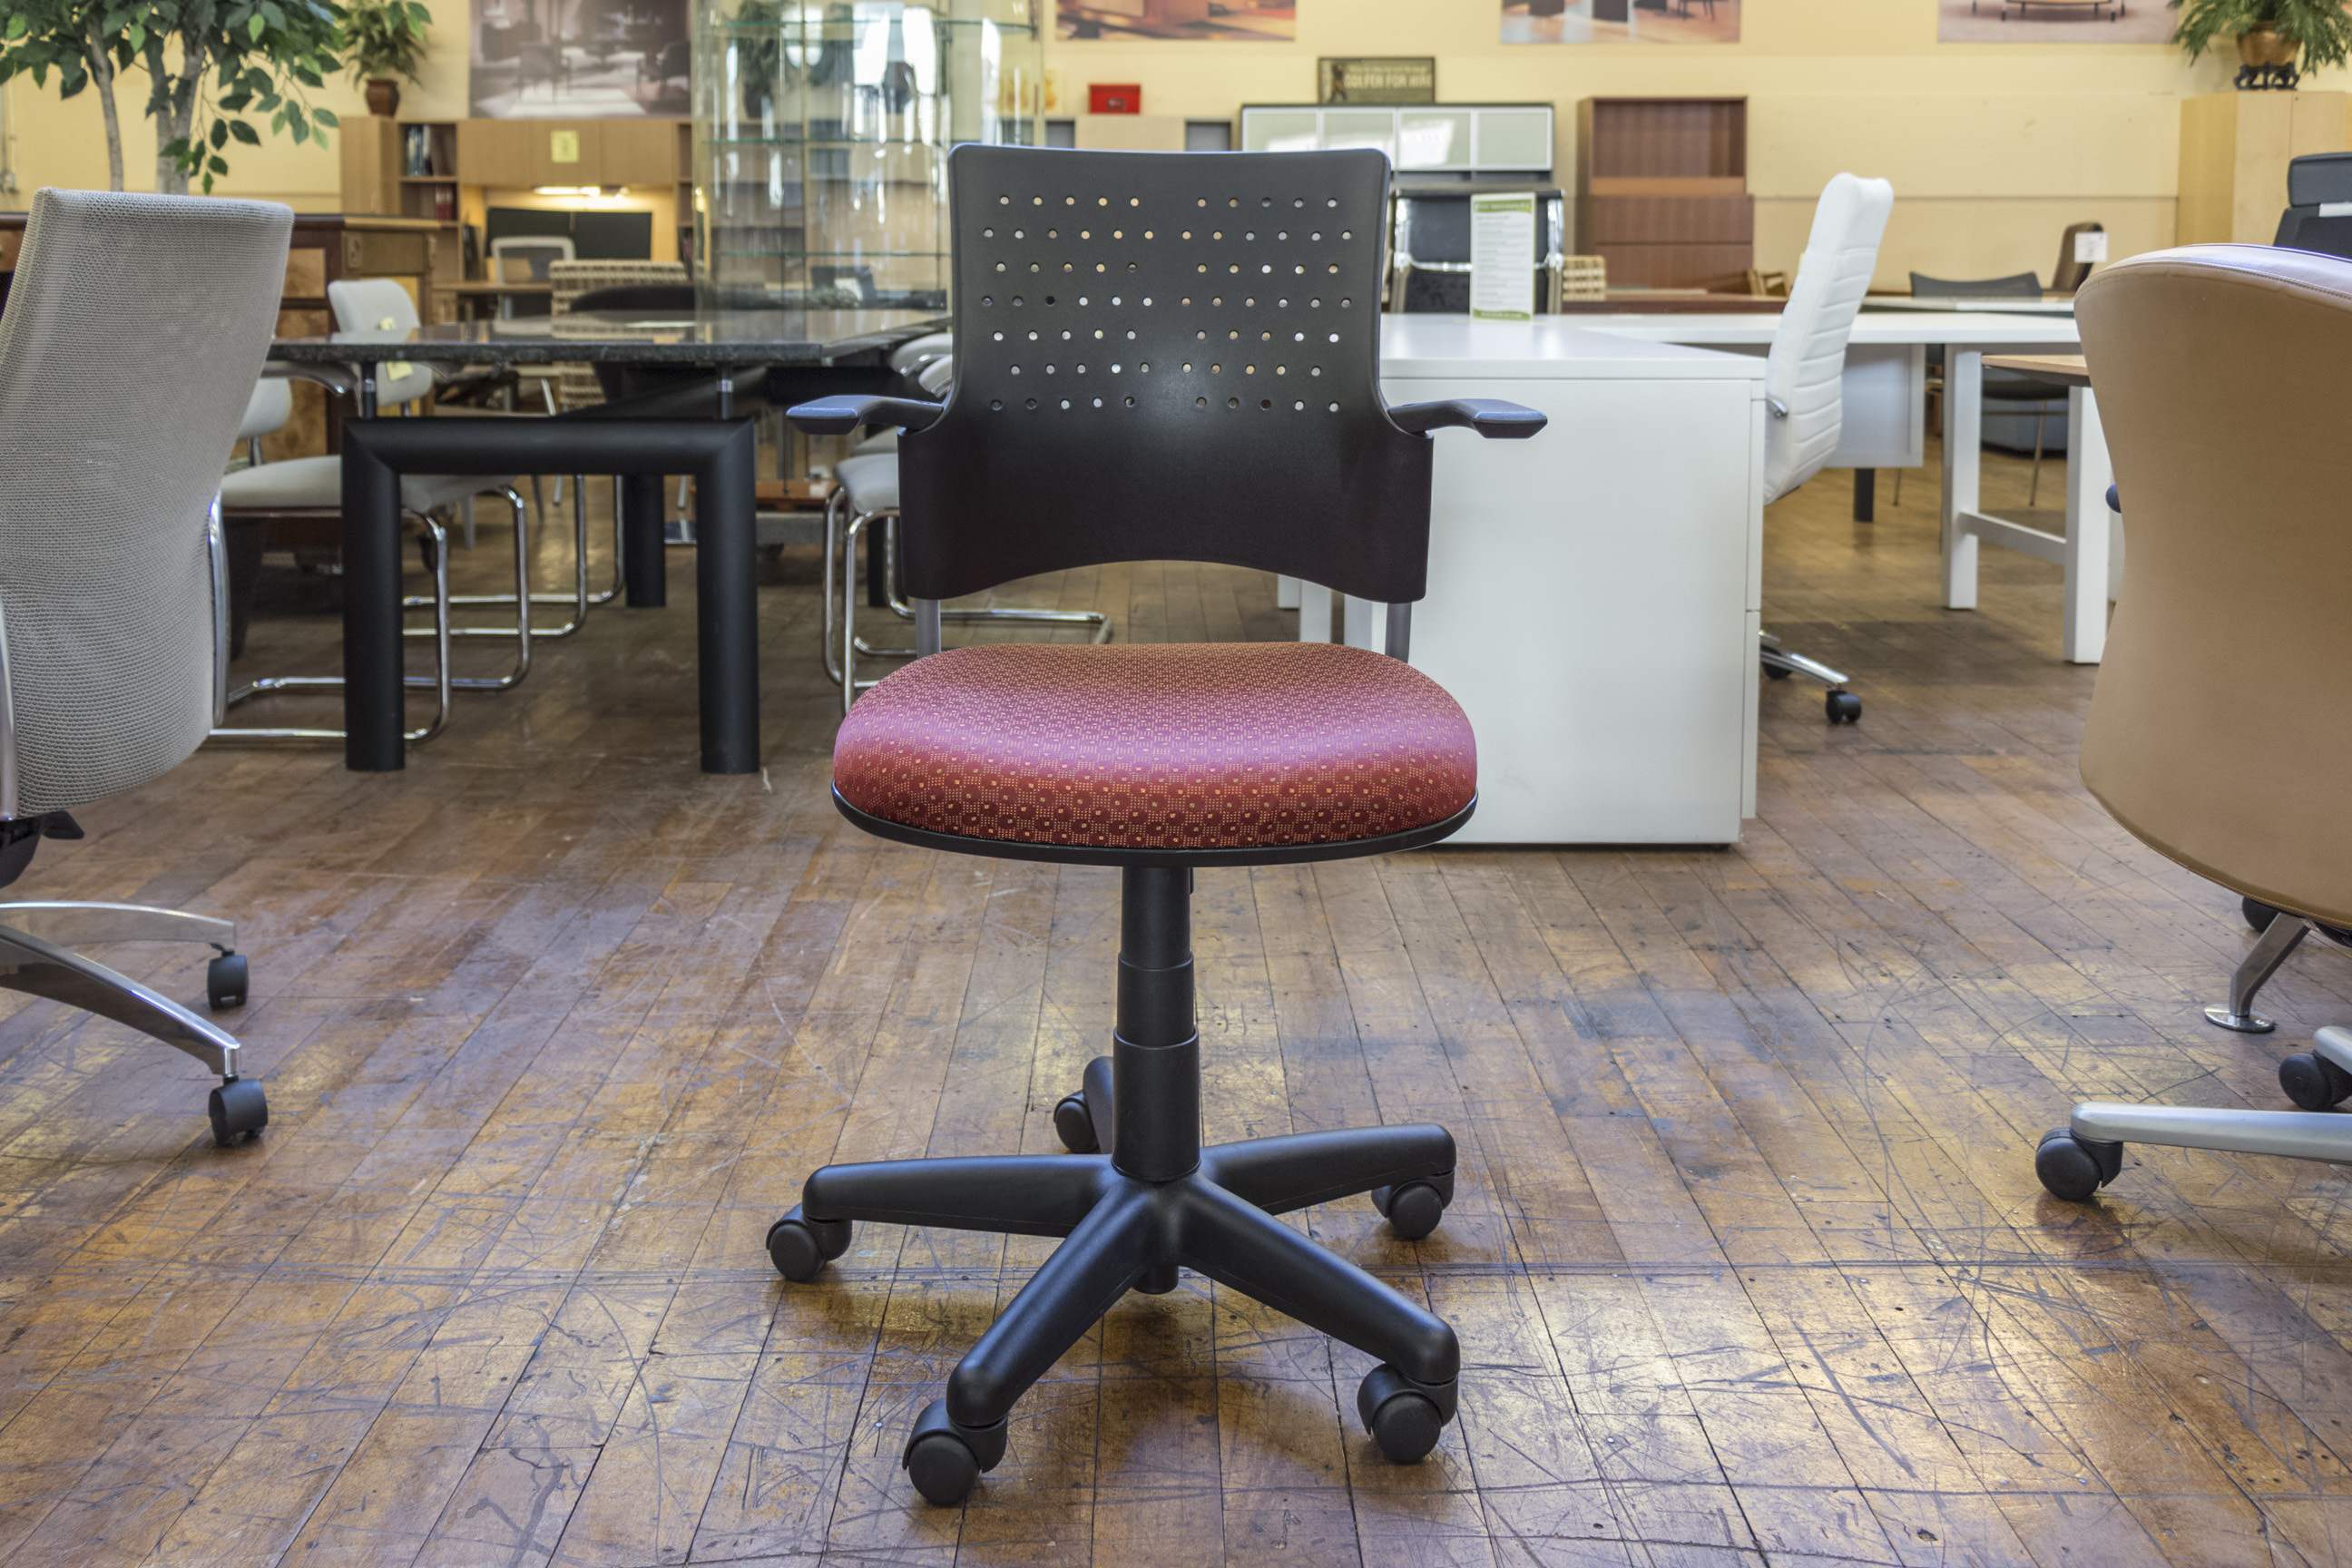 buzz seating snap chairs u2022 peartree office furniture rh peartreeofficefurniture com Pear Tree Inn Peach Tree